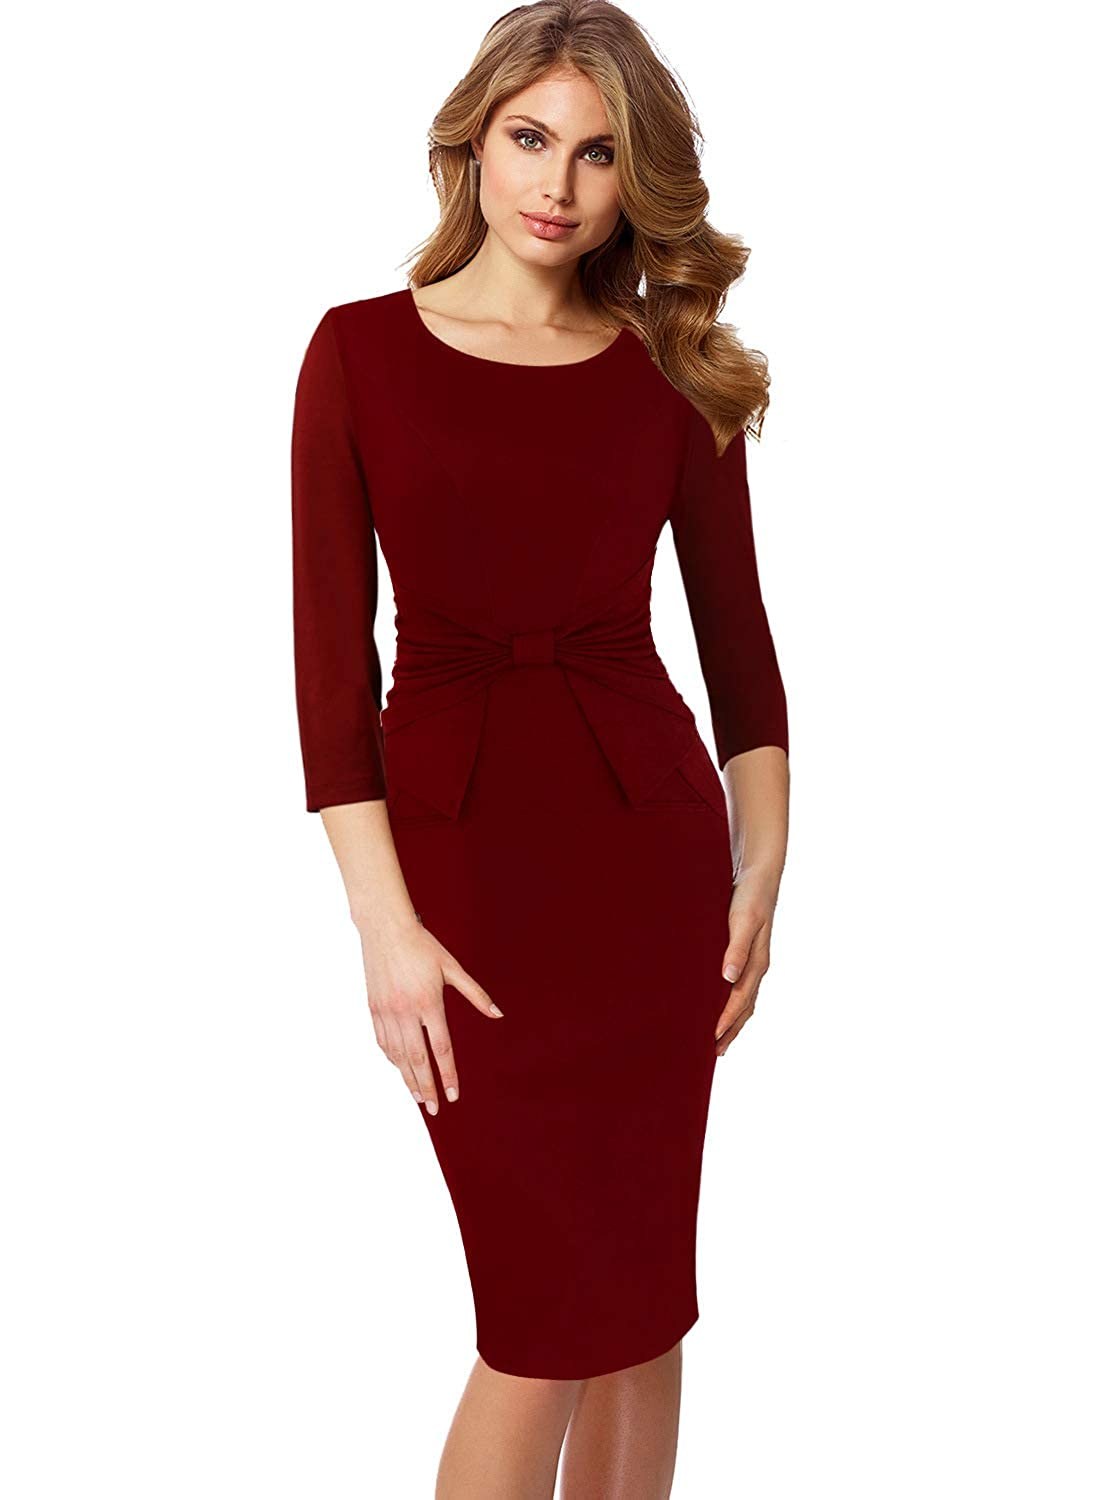 Dark Red 3 4 Sleeve VFSHOW Womens Pleated Bow Wear to Work Business Office Church Sheath Dress